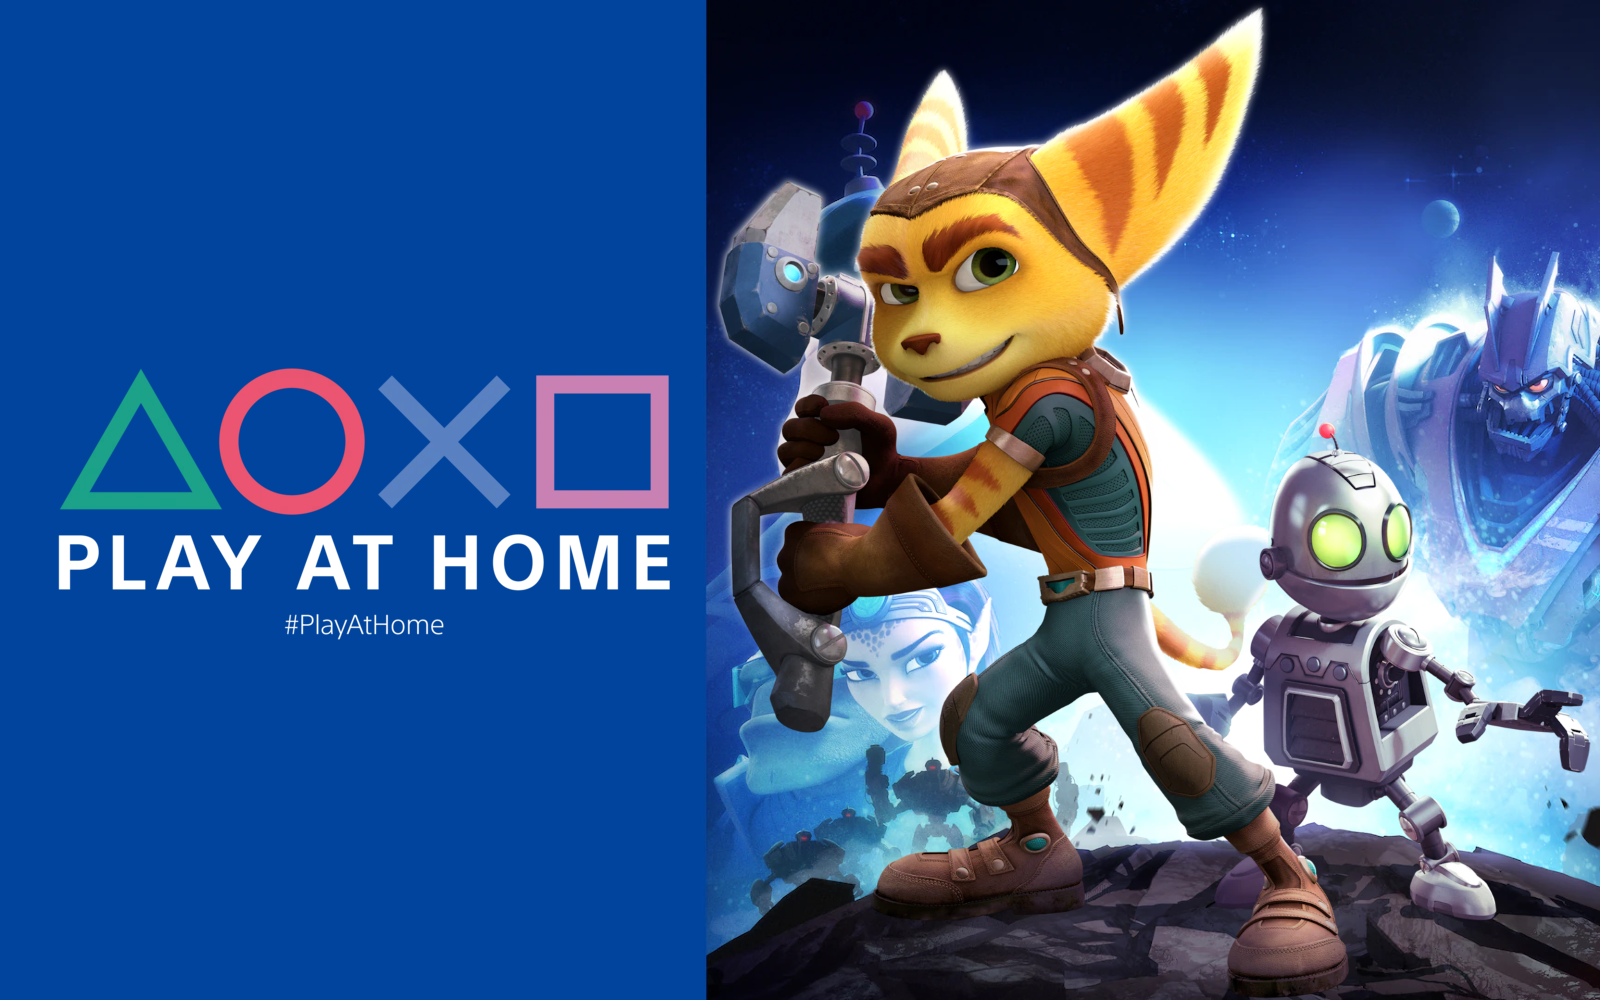 Play At Home Gives Players Ratchet And Clank (2016) For Free